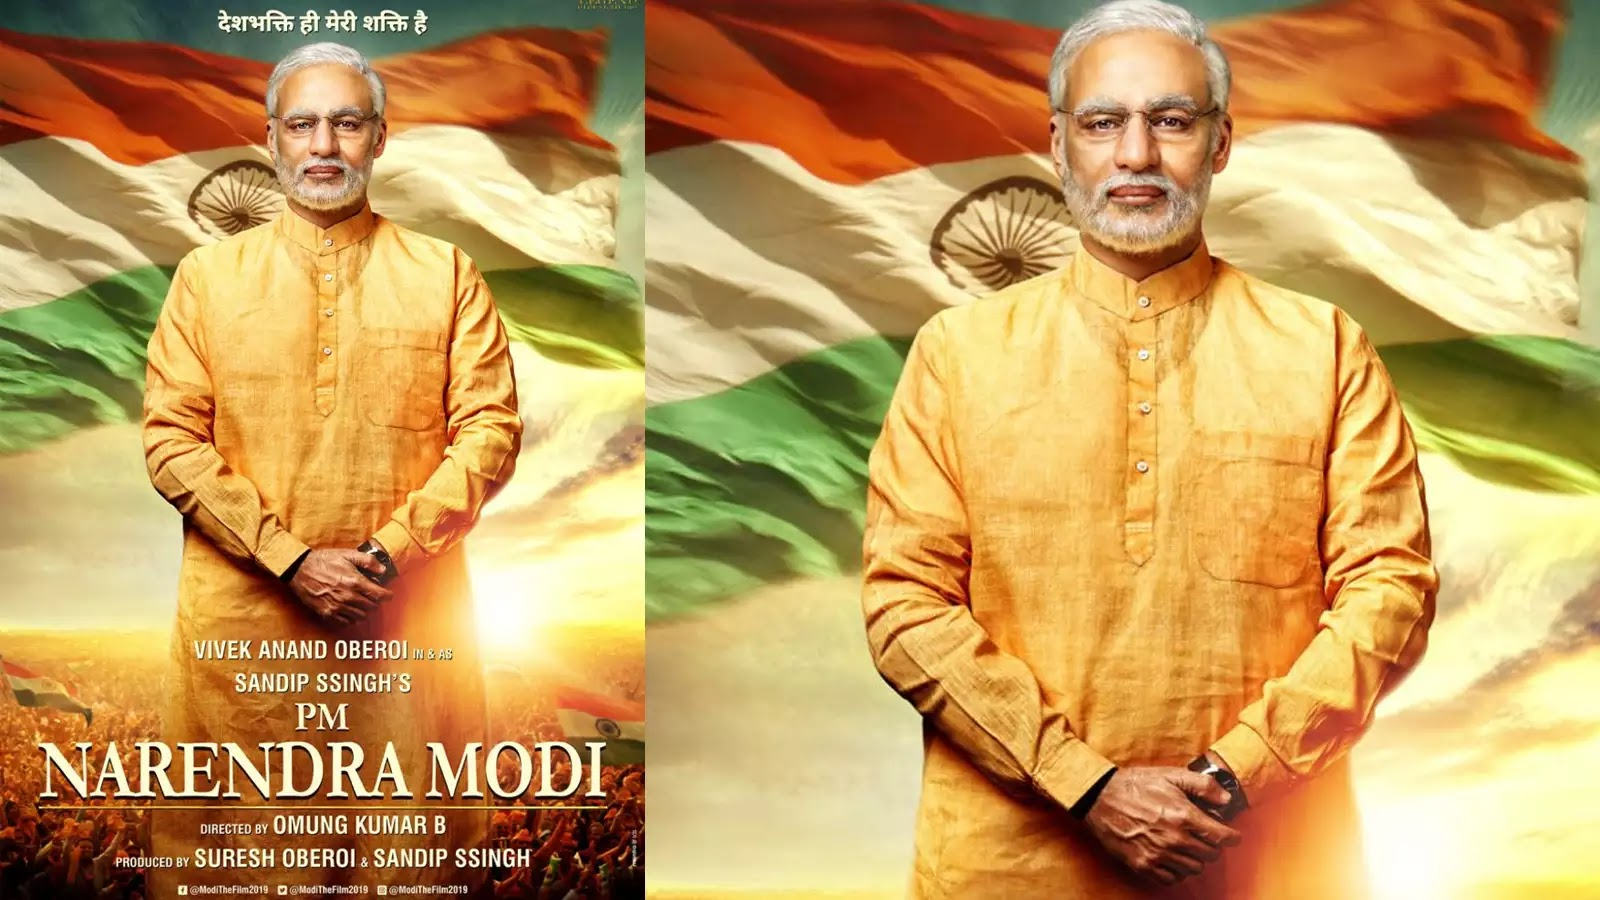 PM Narendra Modi biopic delayed again, new release date not confirmed yet